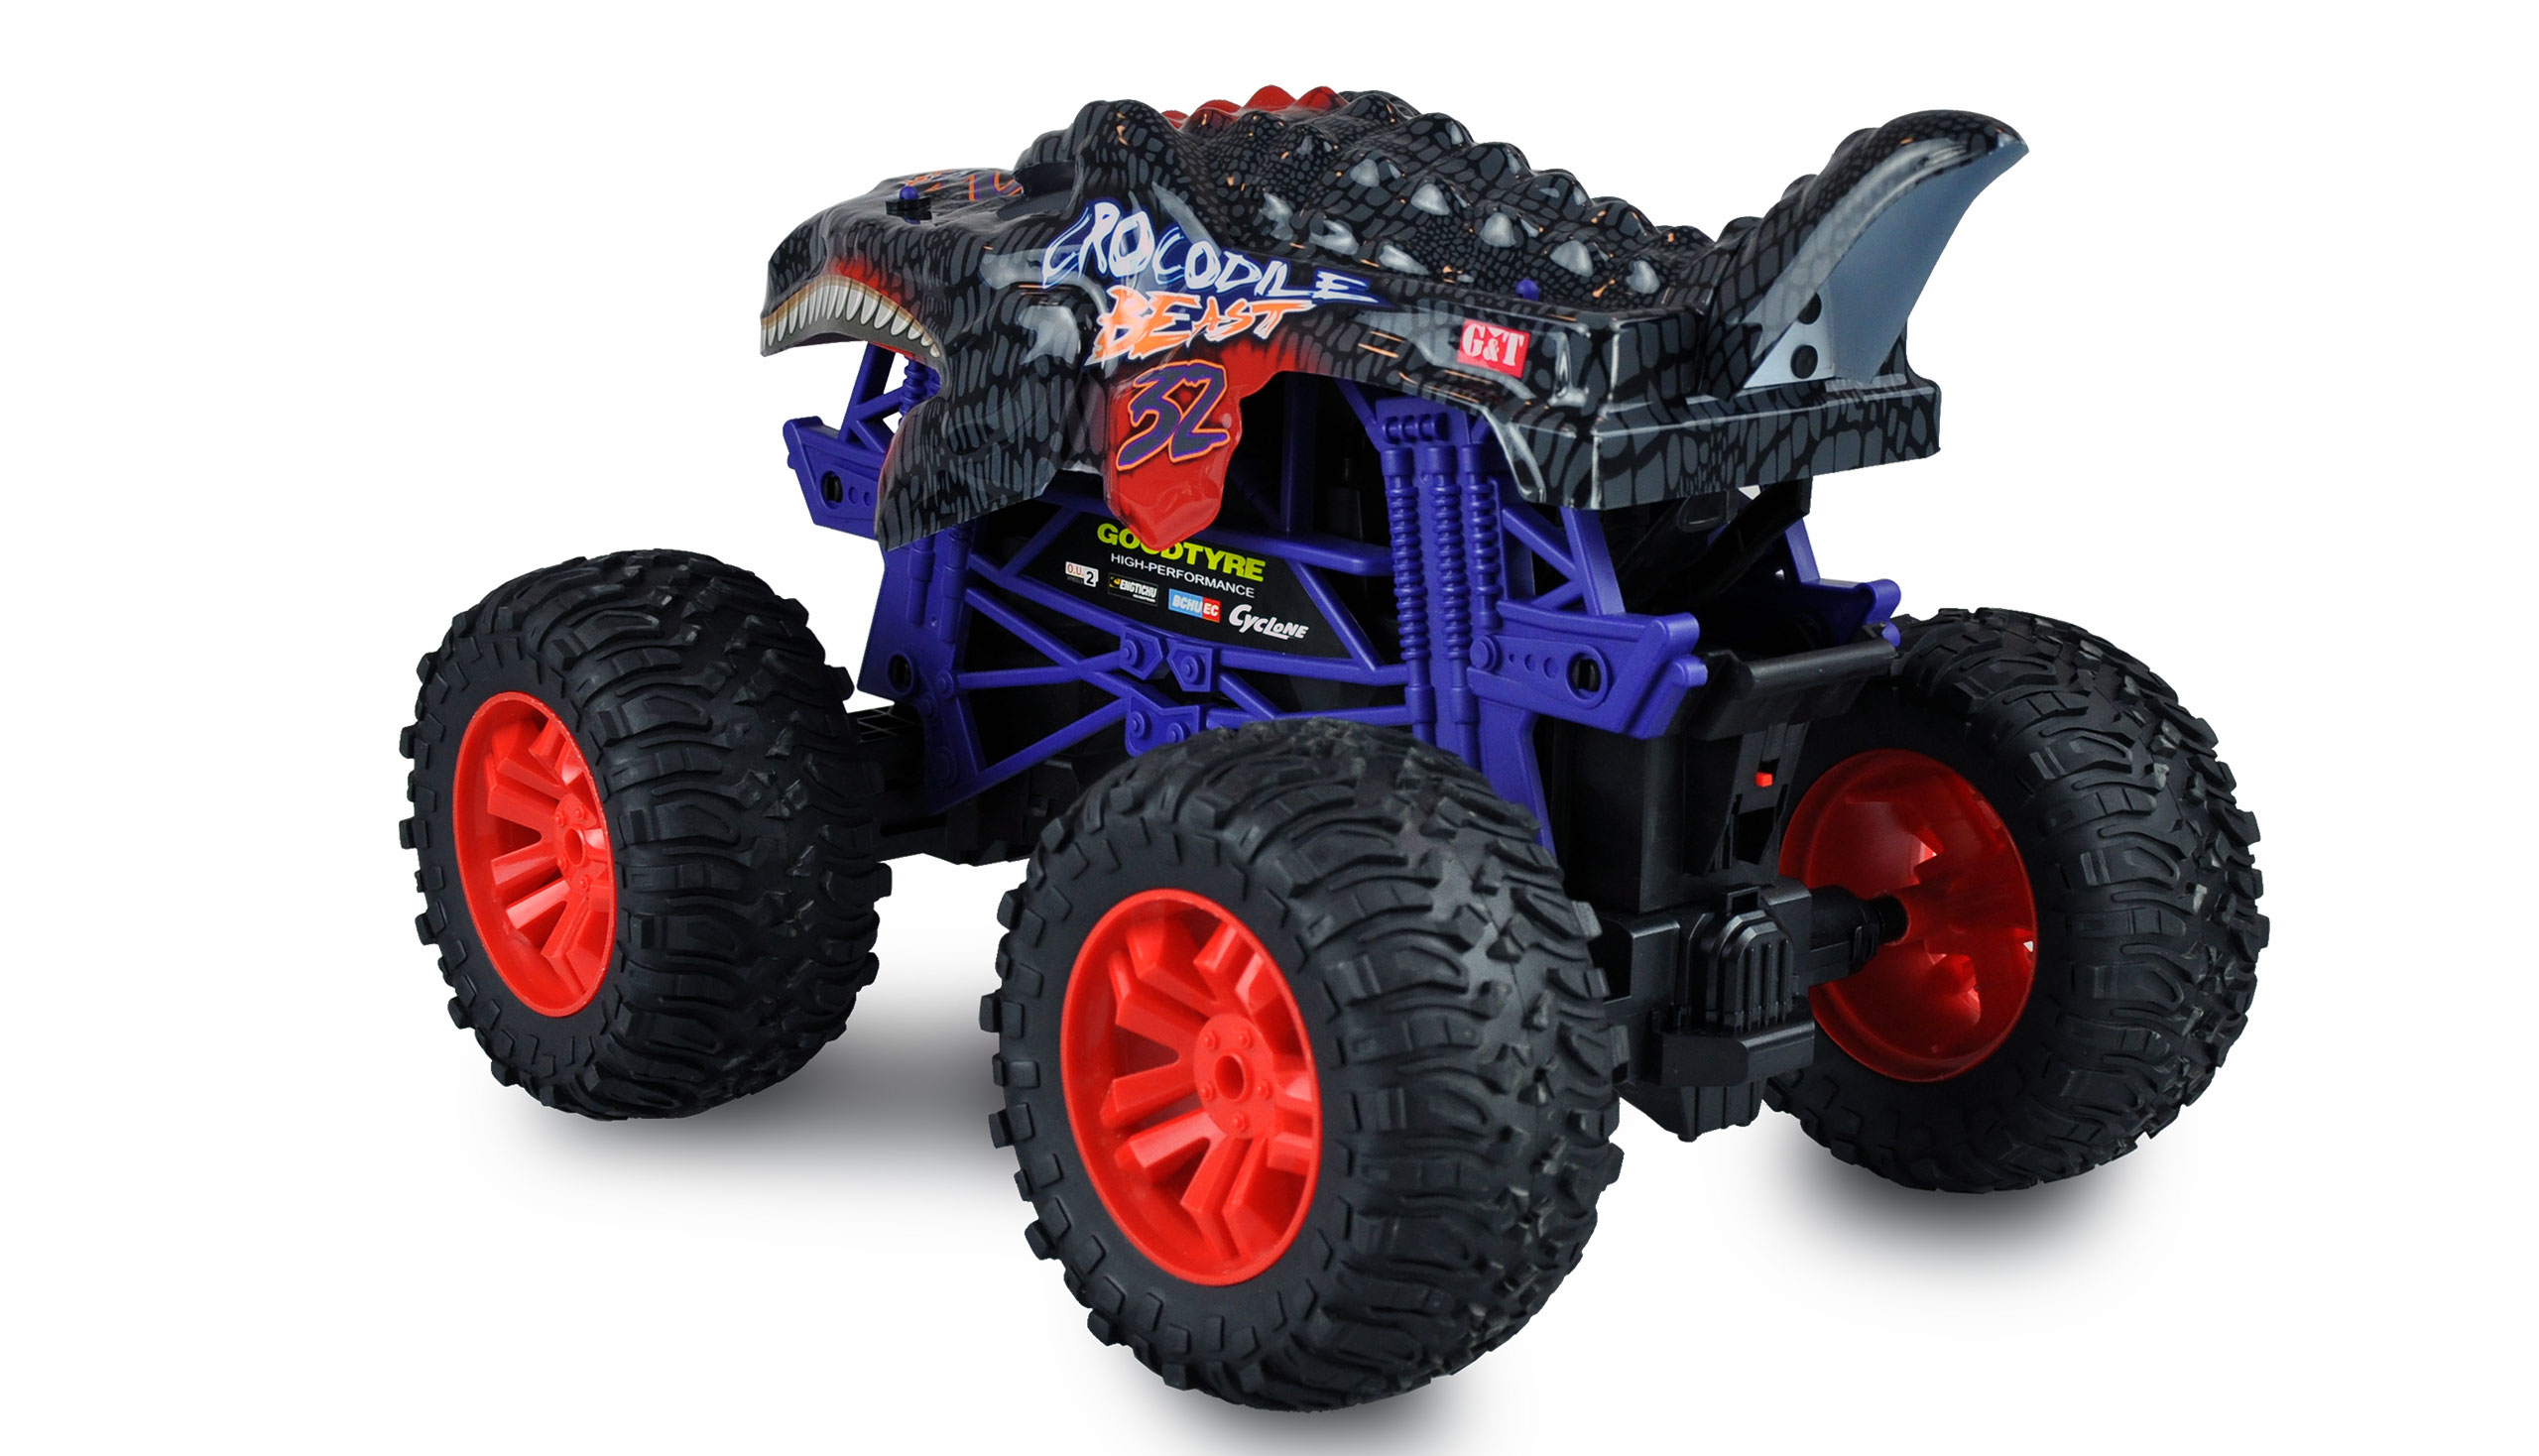 Amewi Crocodile Beast Big - Monstertruck - 1:16 - Junge - 14 Jahr(e) - 1200 mAh - 1,65 kg